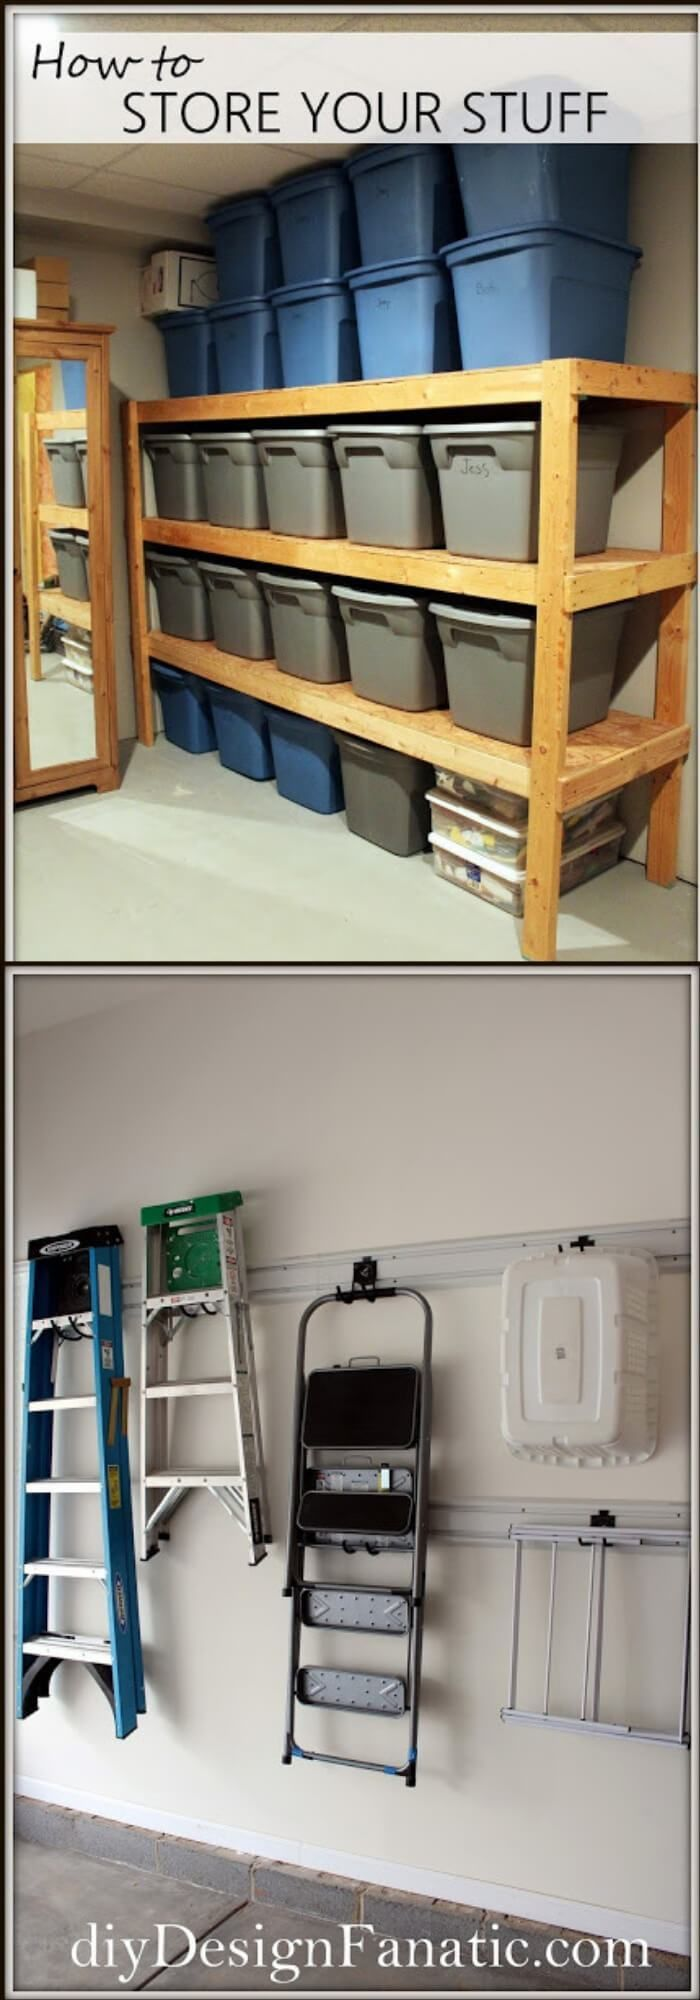 19+ Best DIY Garage Storage Ideas For 2019 - FarmFoodFamily images